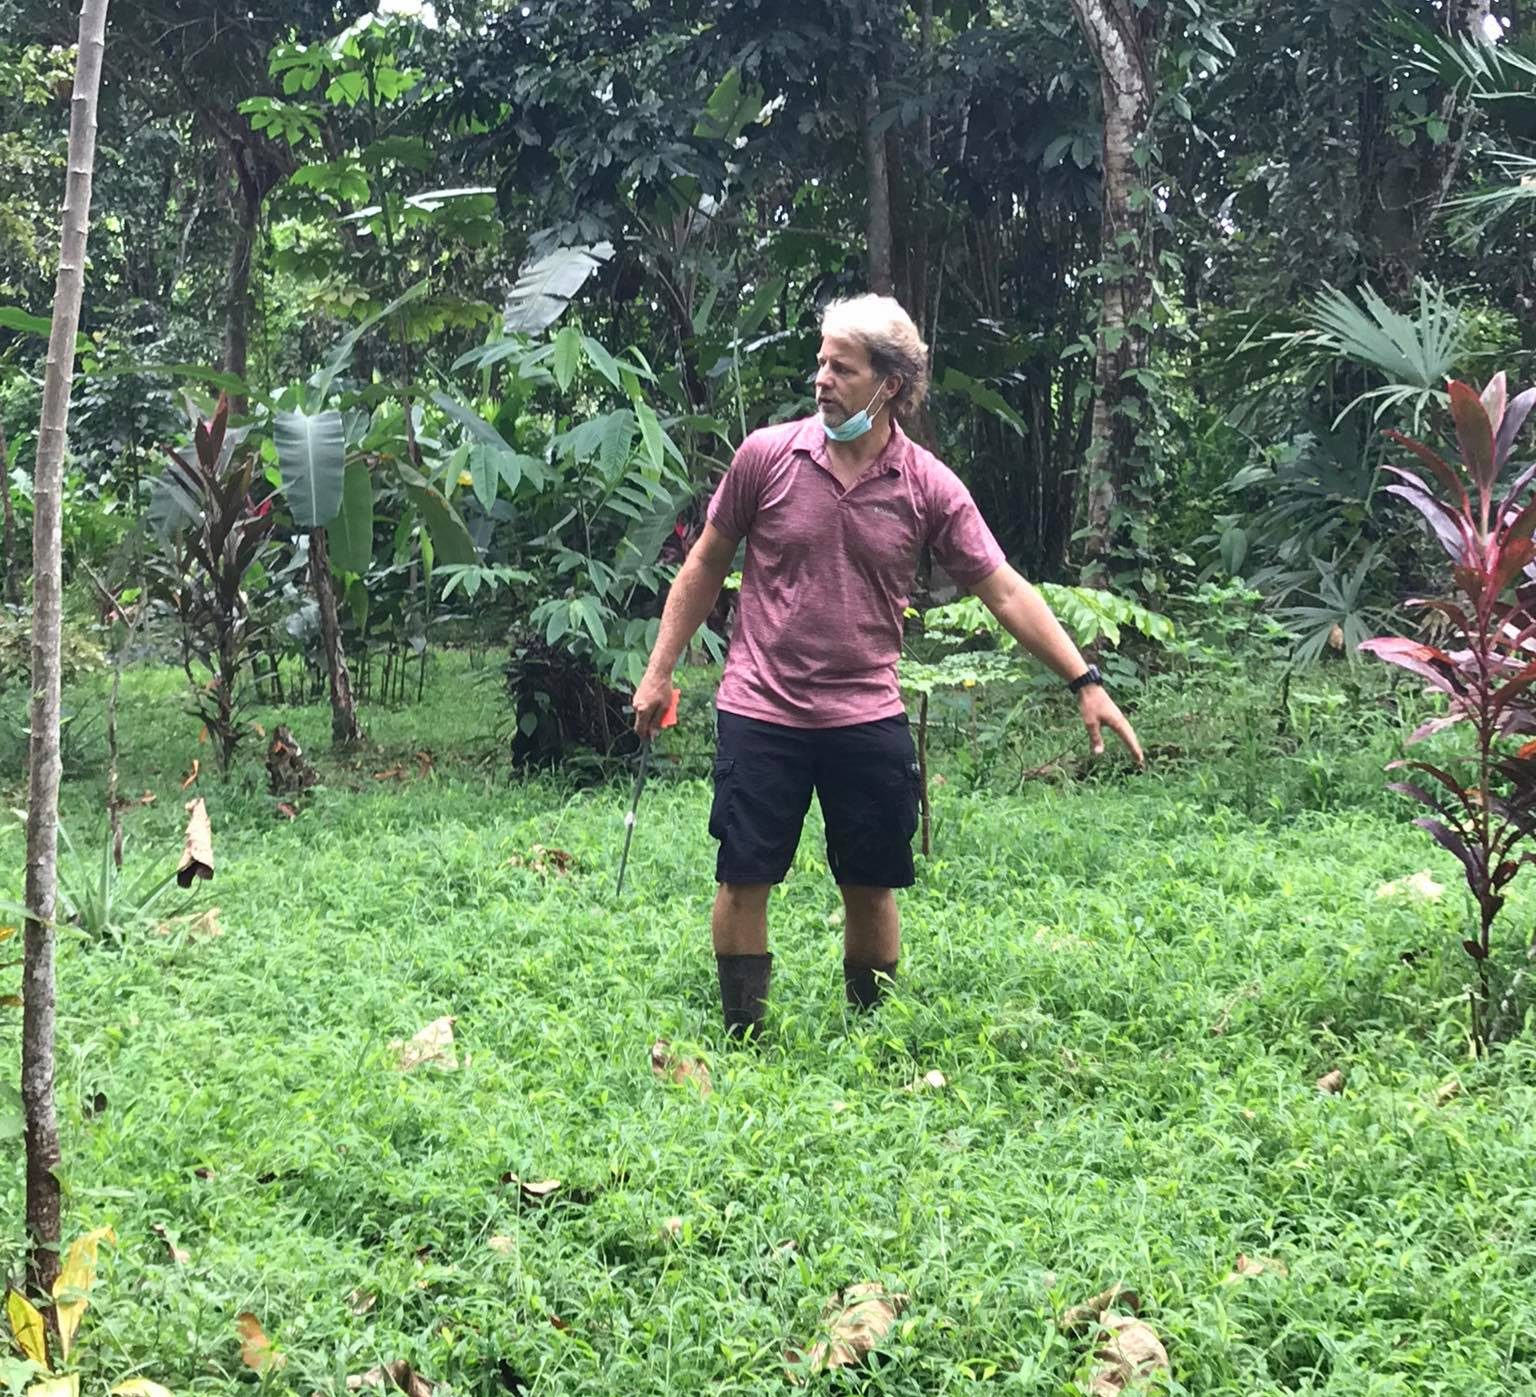 Brian Wilcox of Bocas Rainforest Reforestation Institute explaining to volunteers their reforestation project